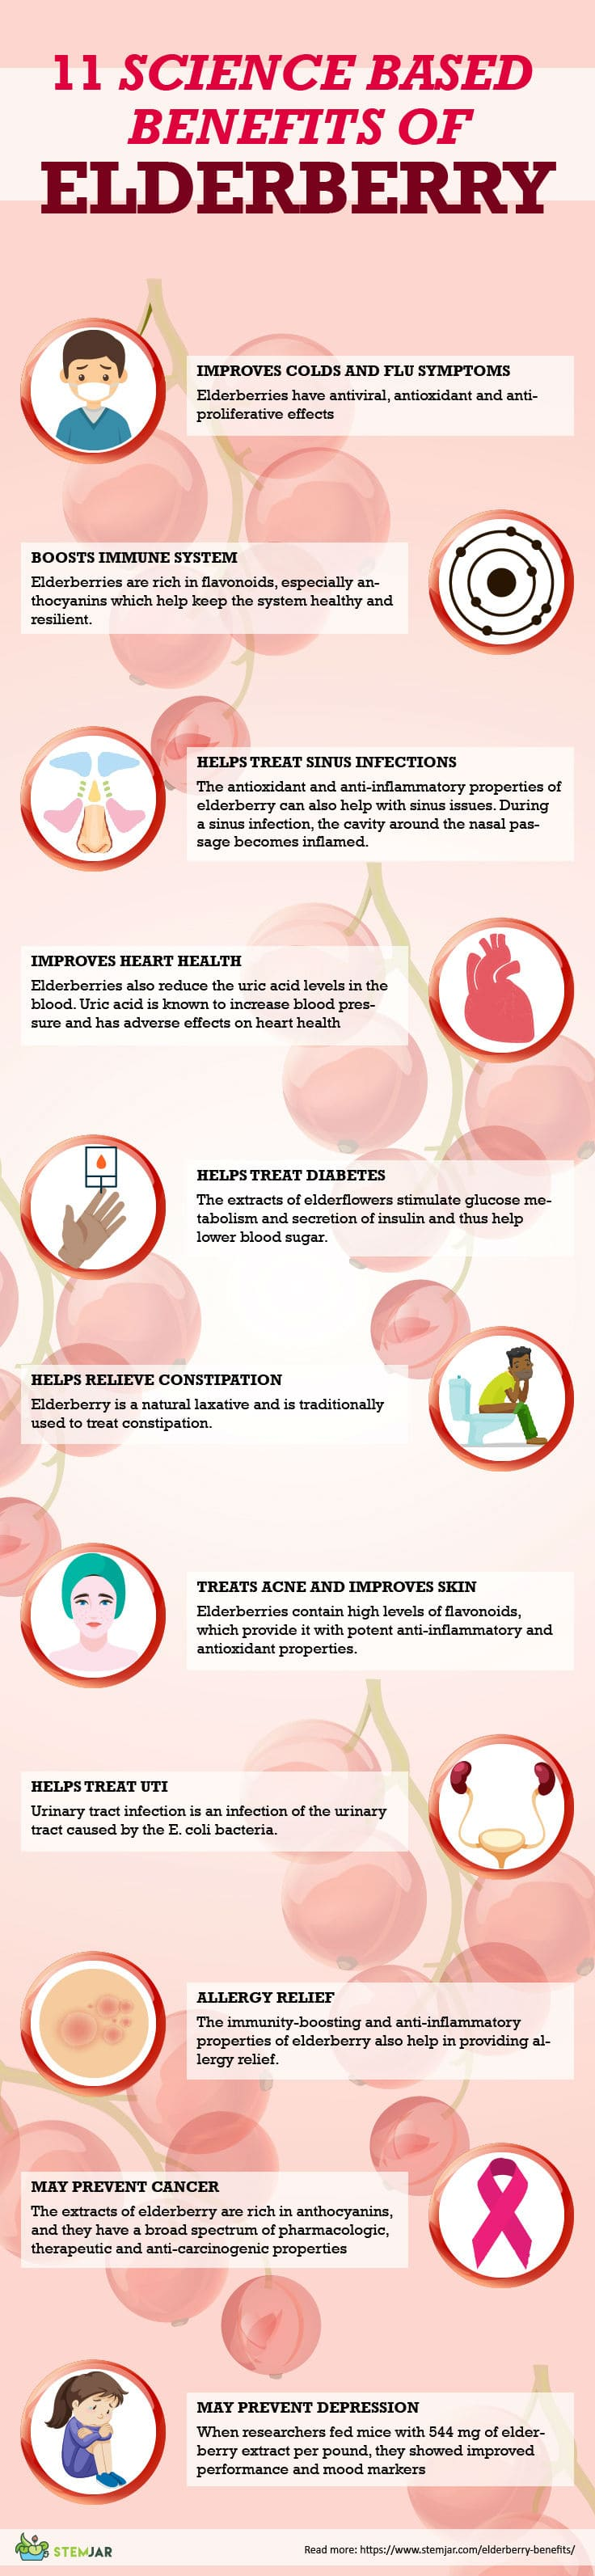 elderberry benefits infographic